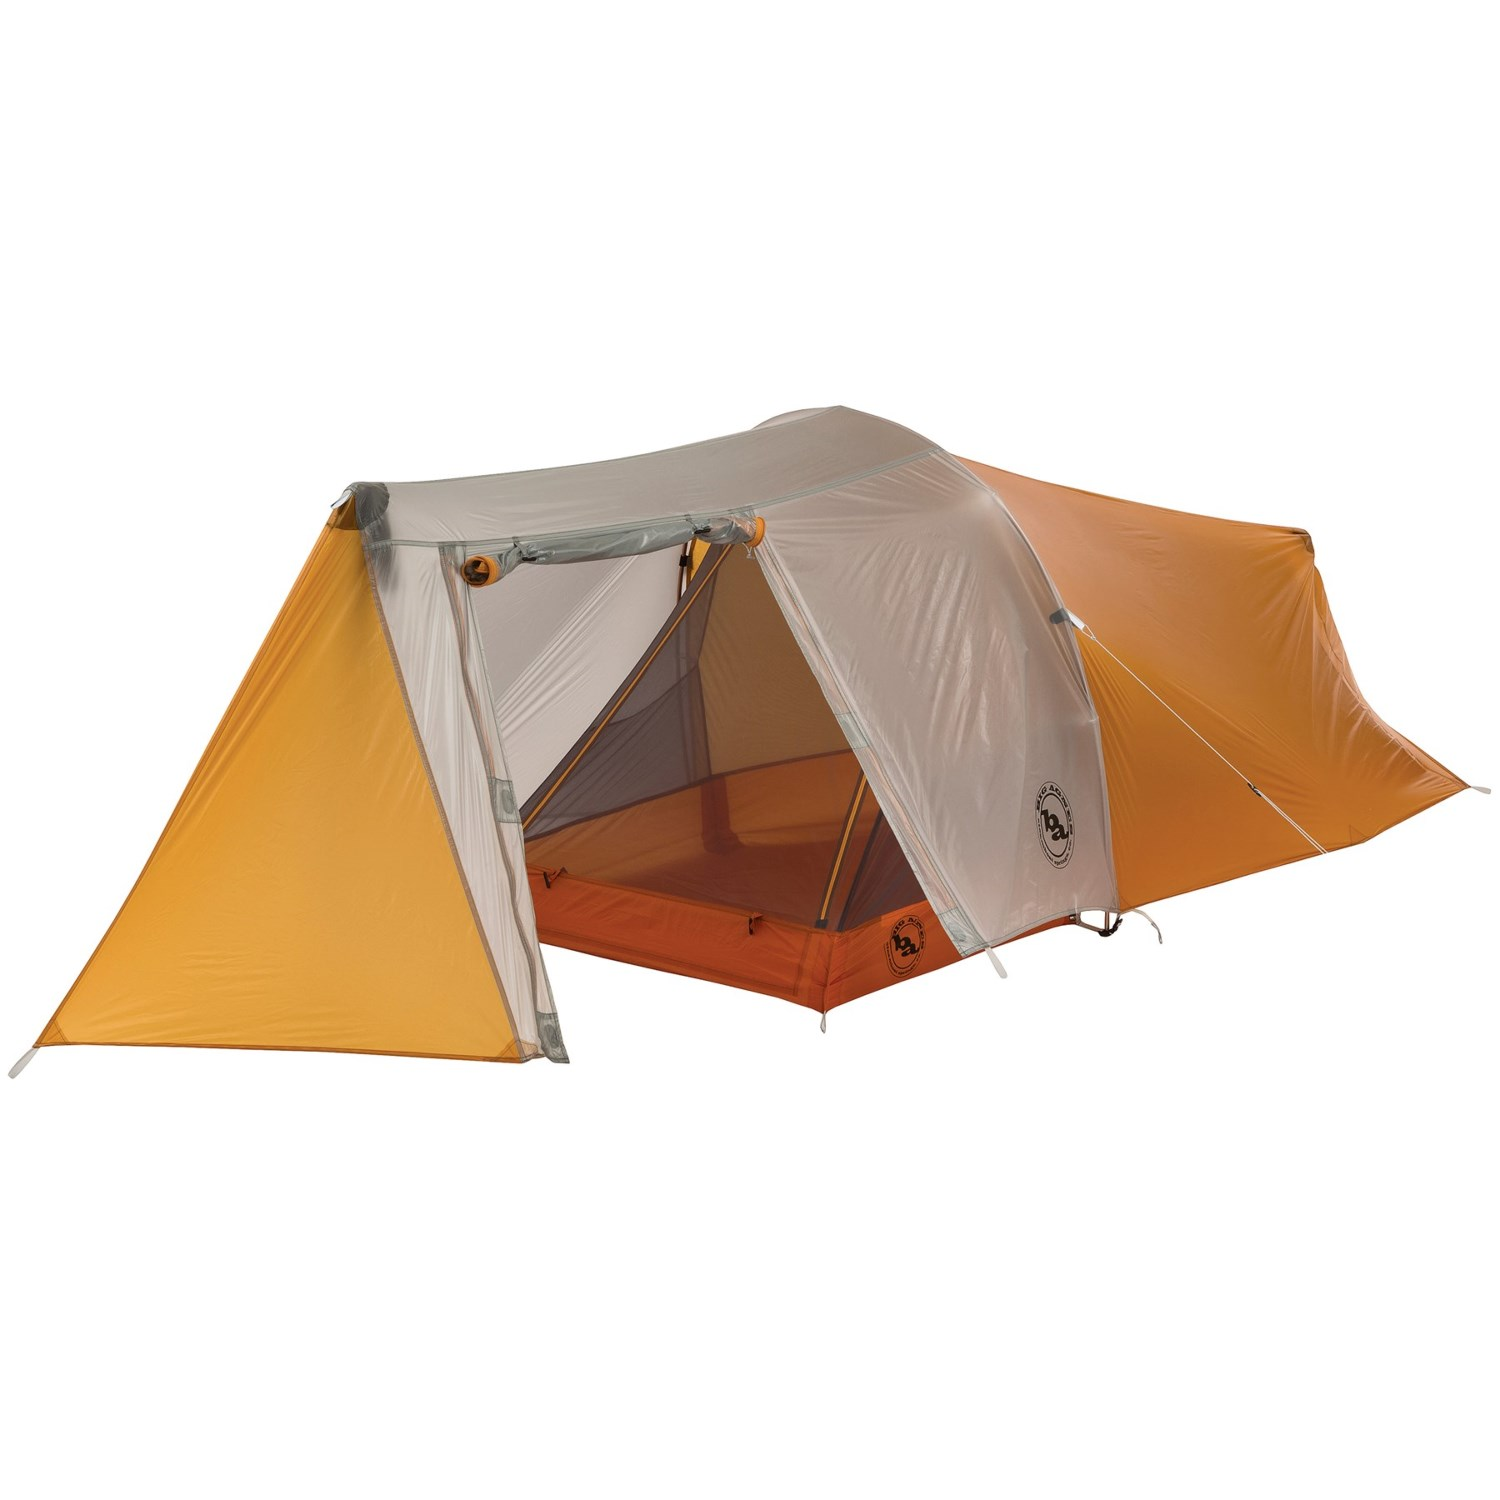 Big Agnes Bitter Springs UL 1 Tent with Footprint - 1-Person 3-Season  sc 1 st  Sierra Trading Post & Big Agnes Bitter Springs UL 1 Tent with Footprint - 1-Person 3 ...